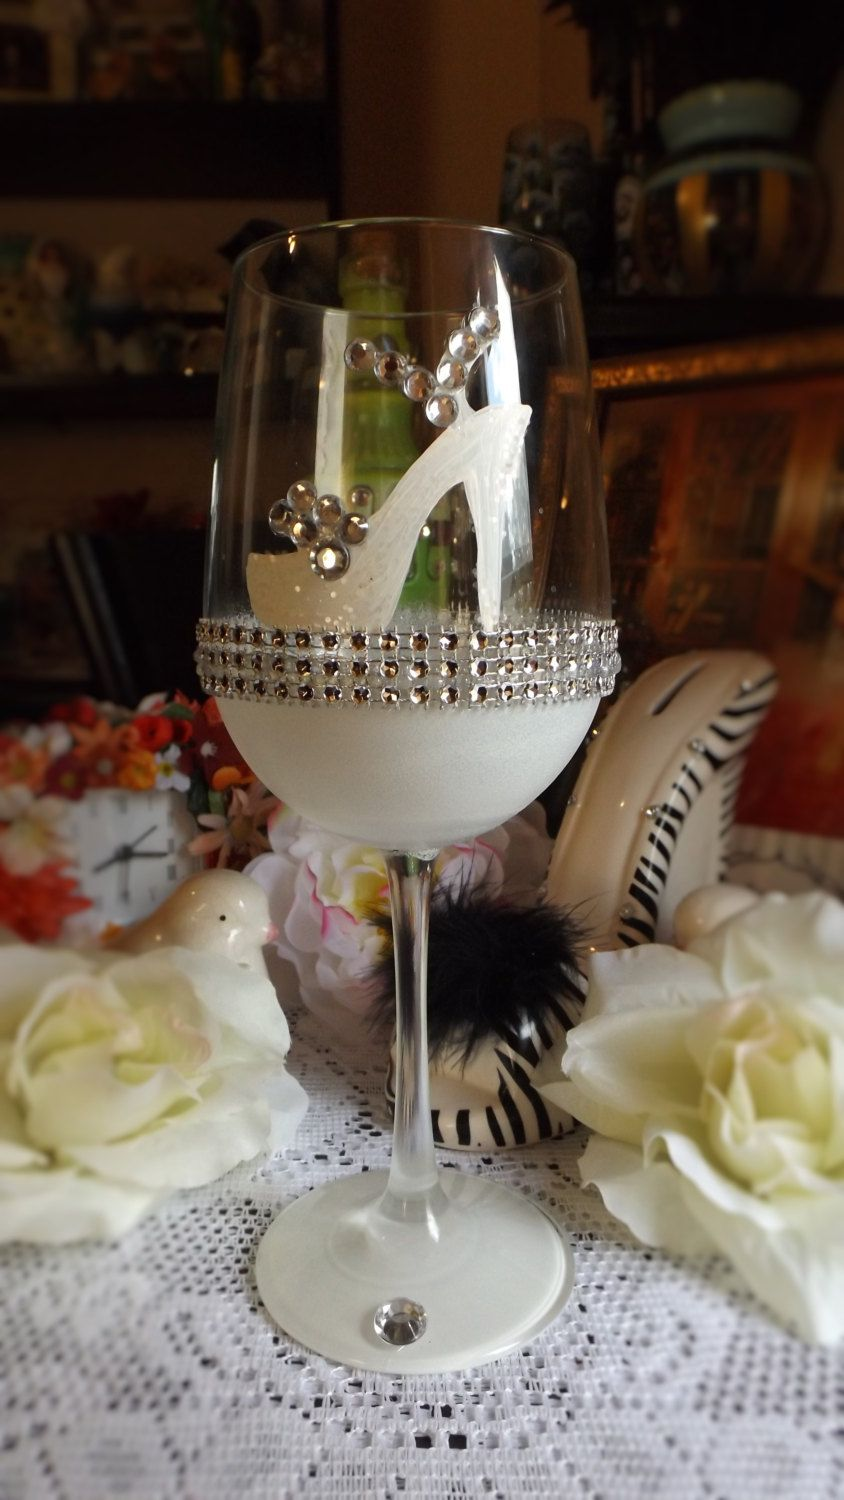 af856e7d290 high heel shoe 20 oz wine glass with rhinestones. I also take custom  request for personalized shoes and decorations on the glass.